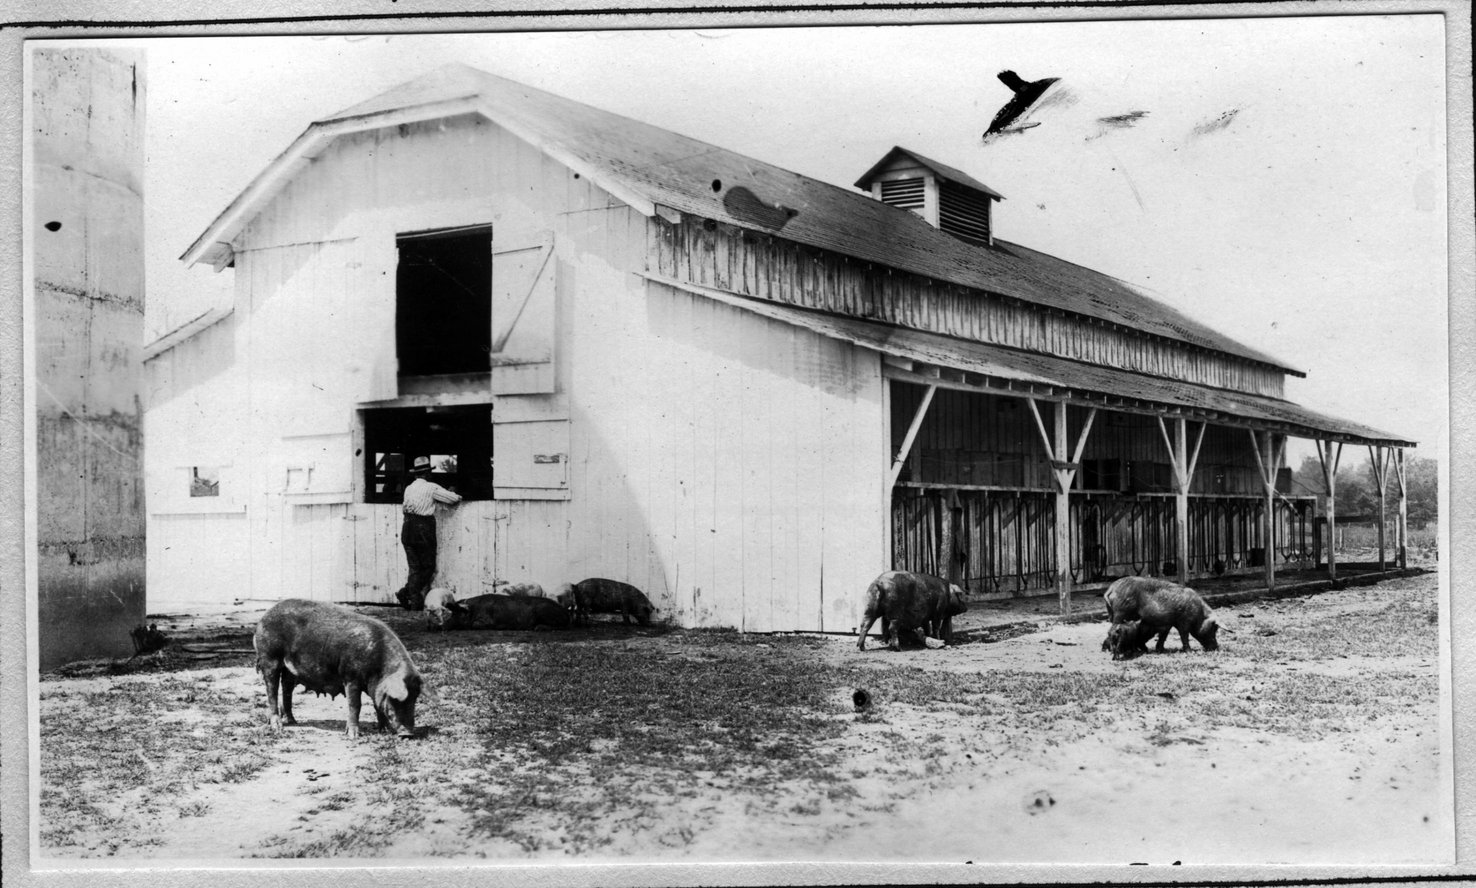 114~Mrs. A. R. Phelan Barn Aug 1920.jpg